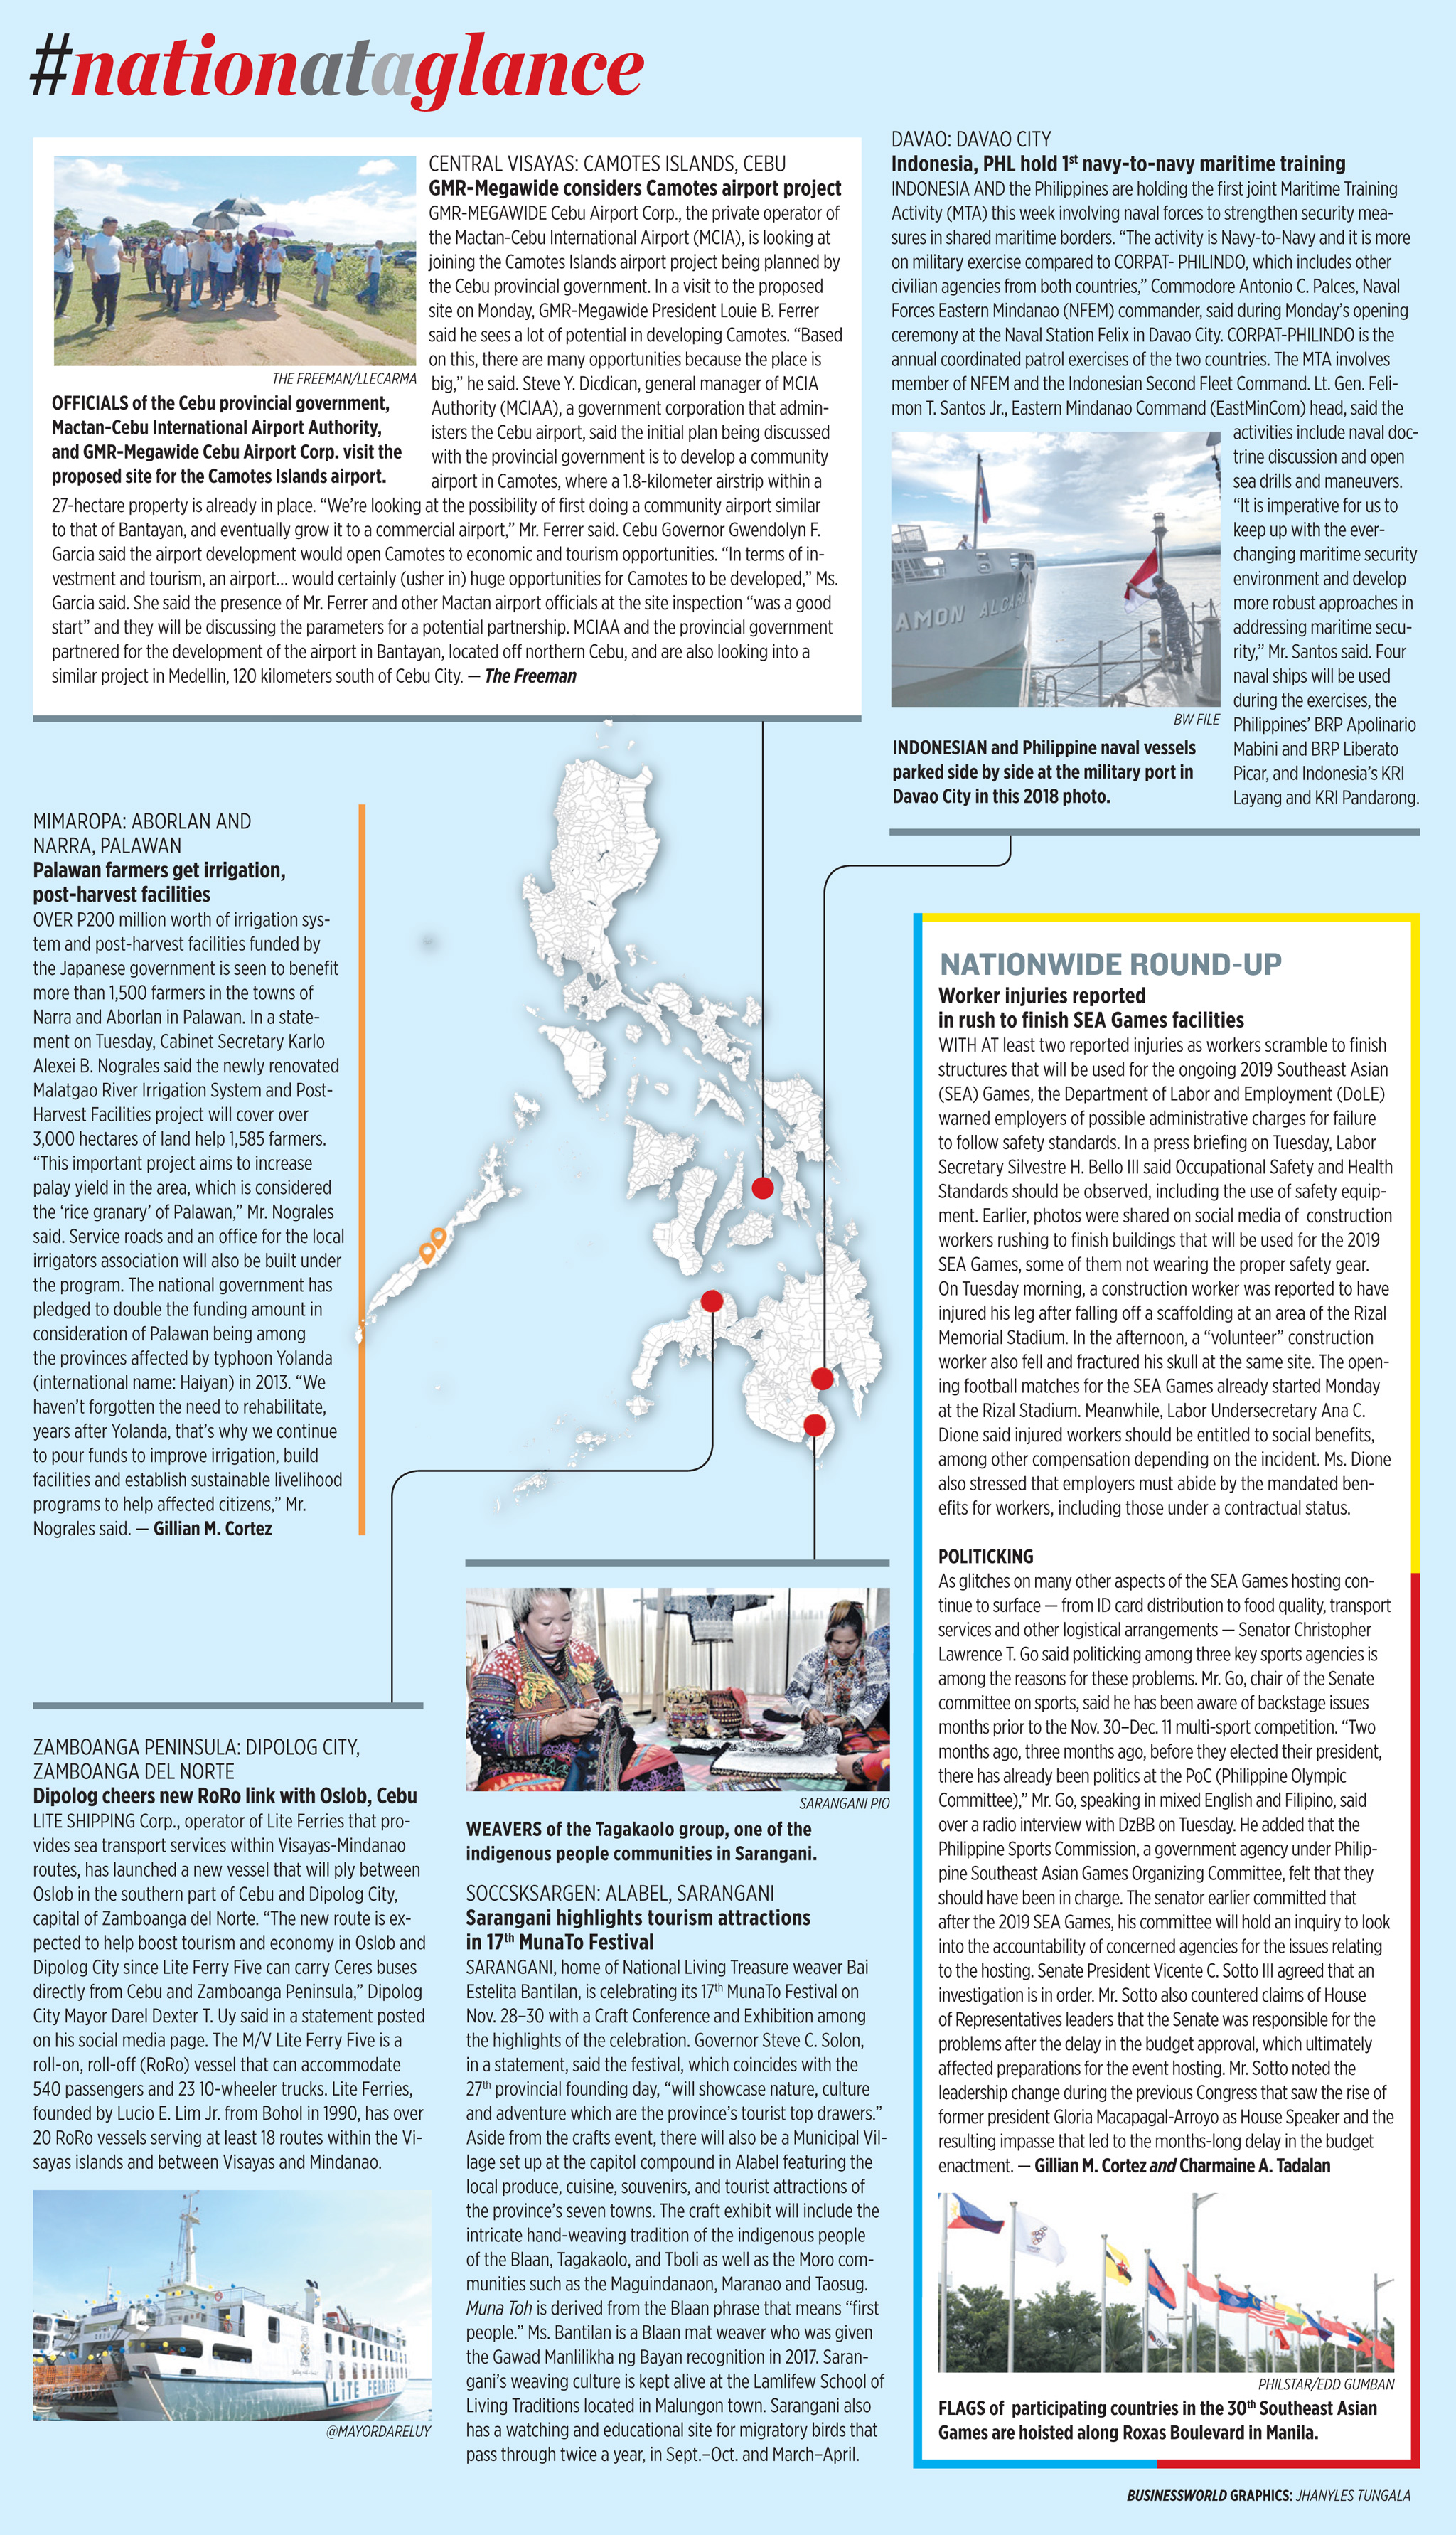 Nation at a Glance — (11/27/19)